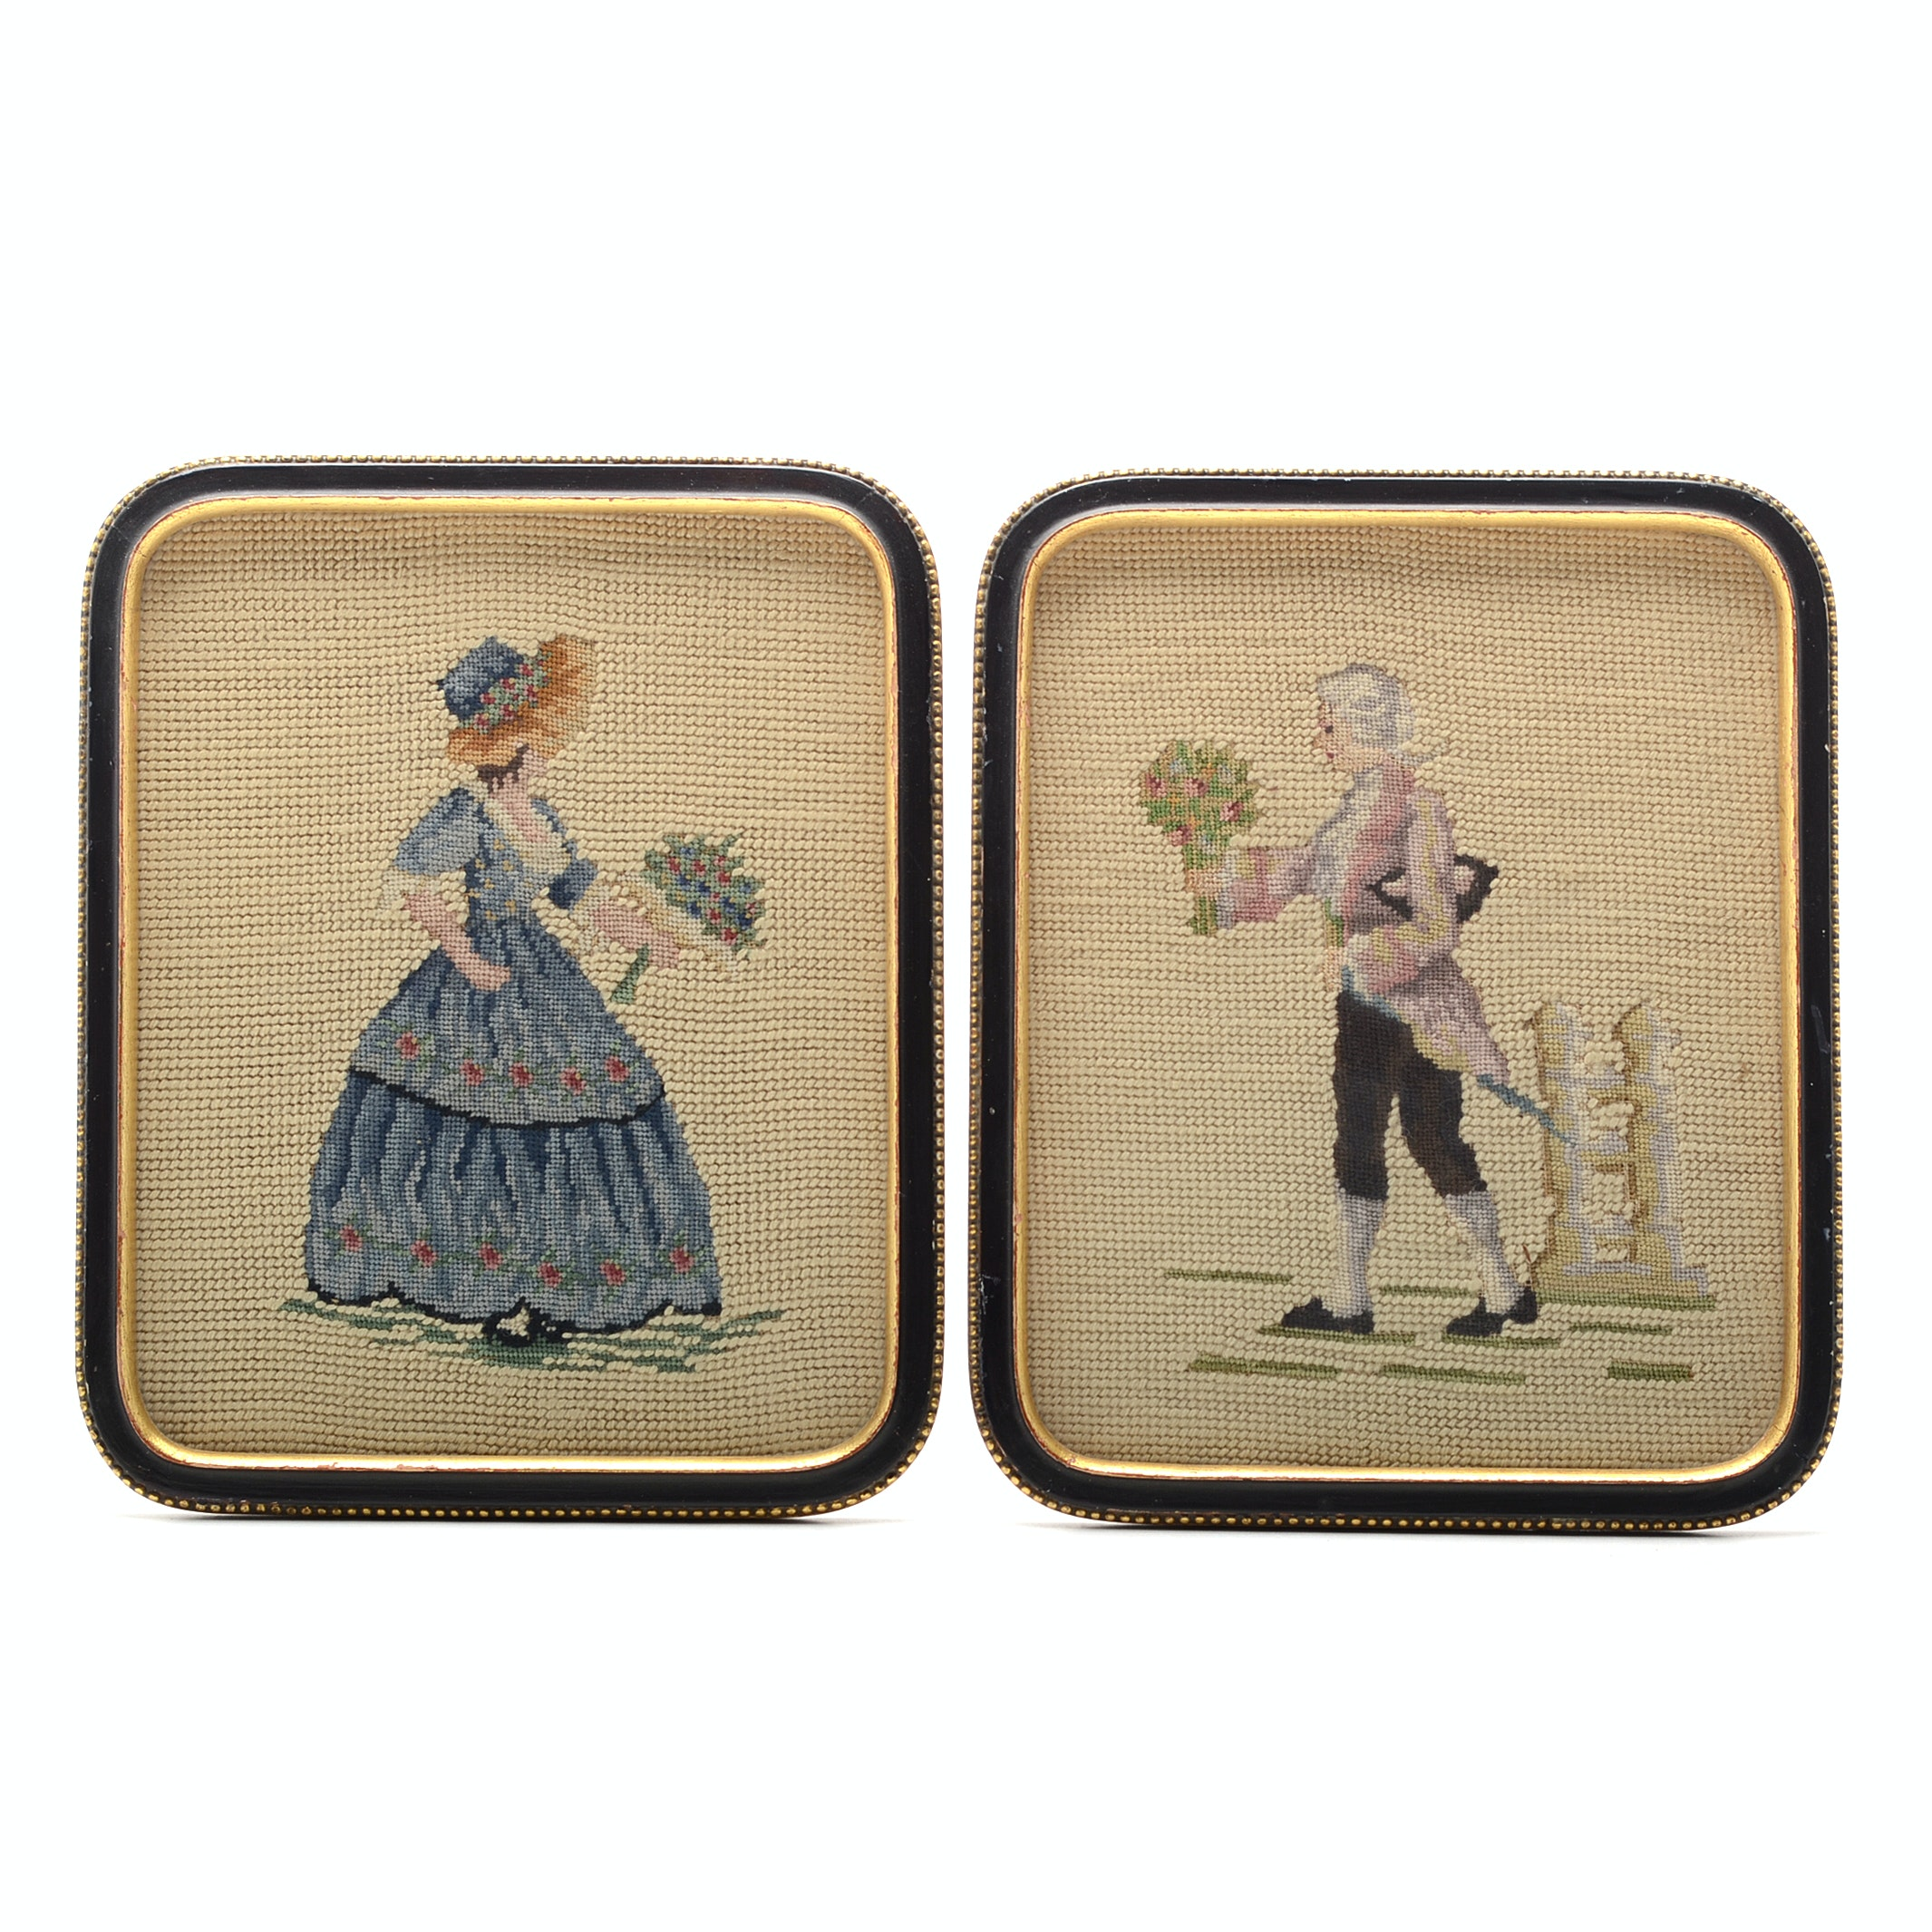 Pair of Framed Needlepoint and Petite-point Portraits